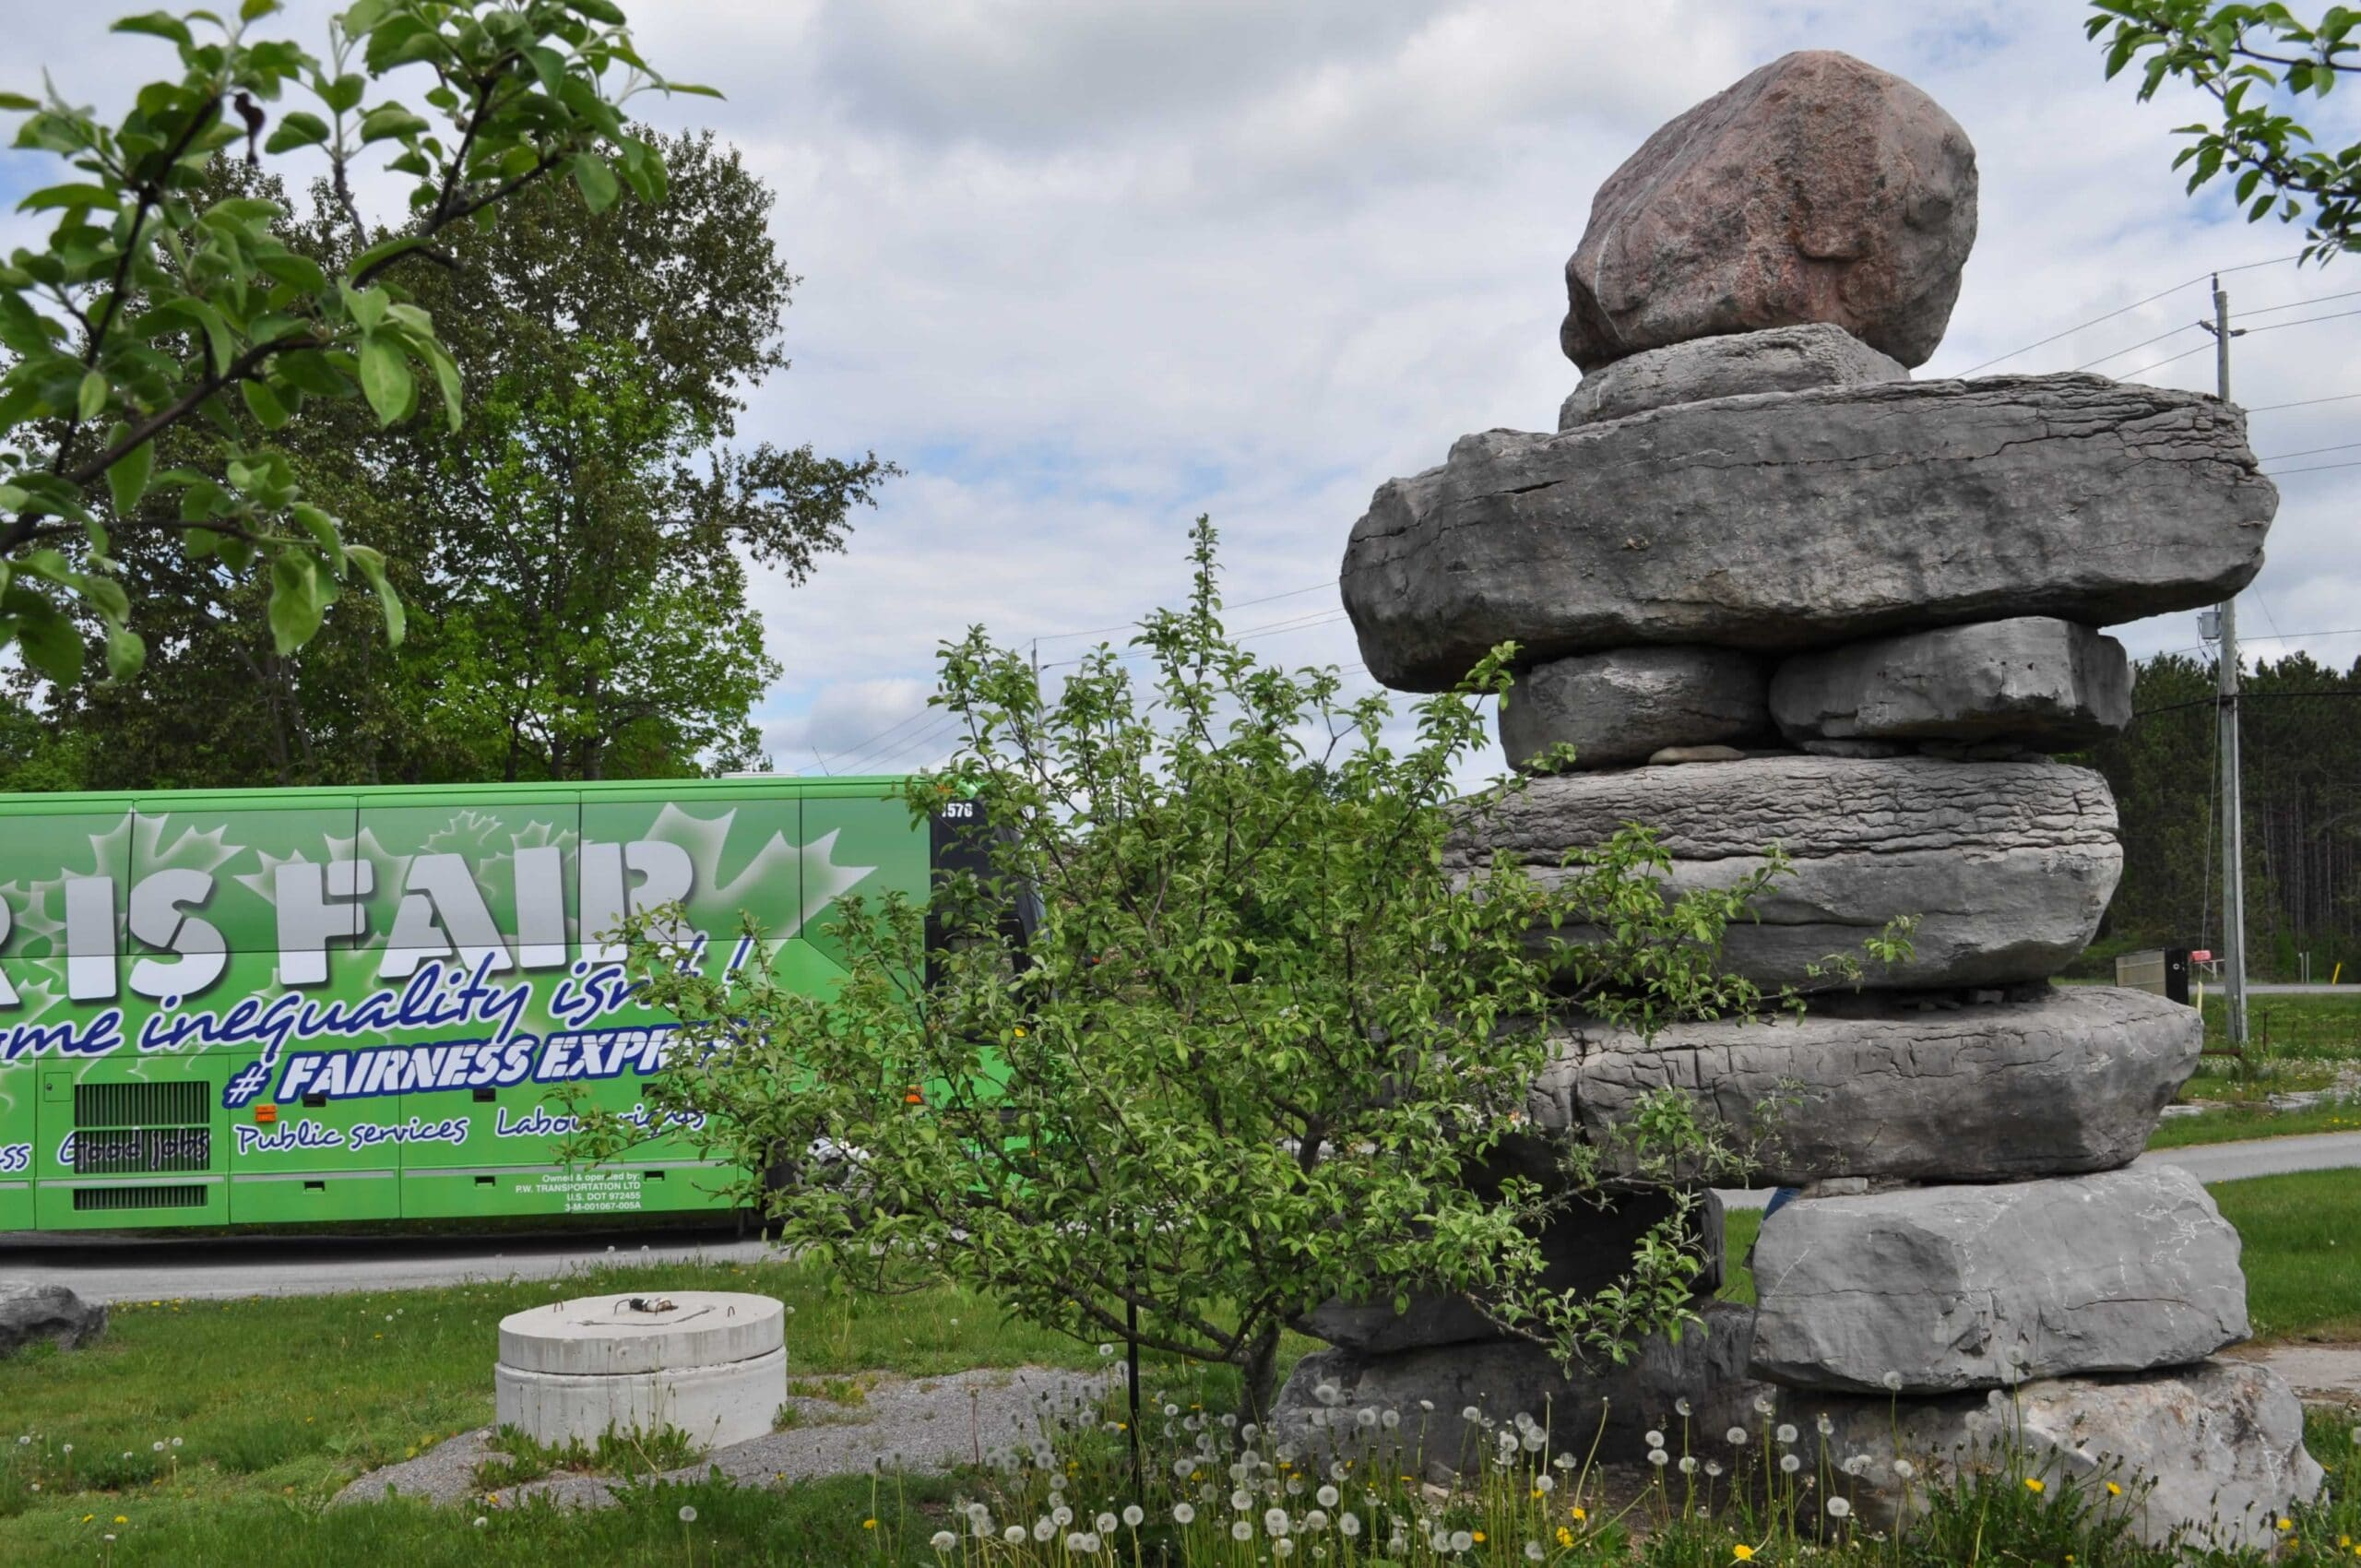 Rocks in formation. Bus that says: Fair is Fair in the background